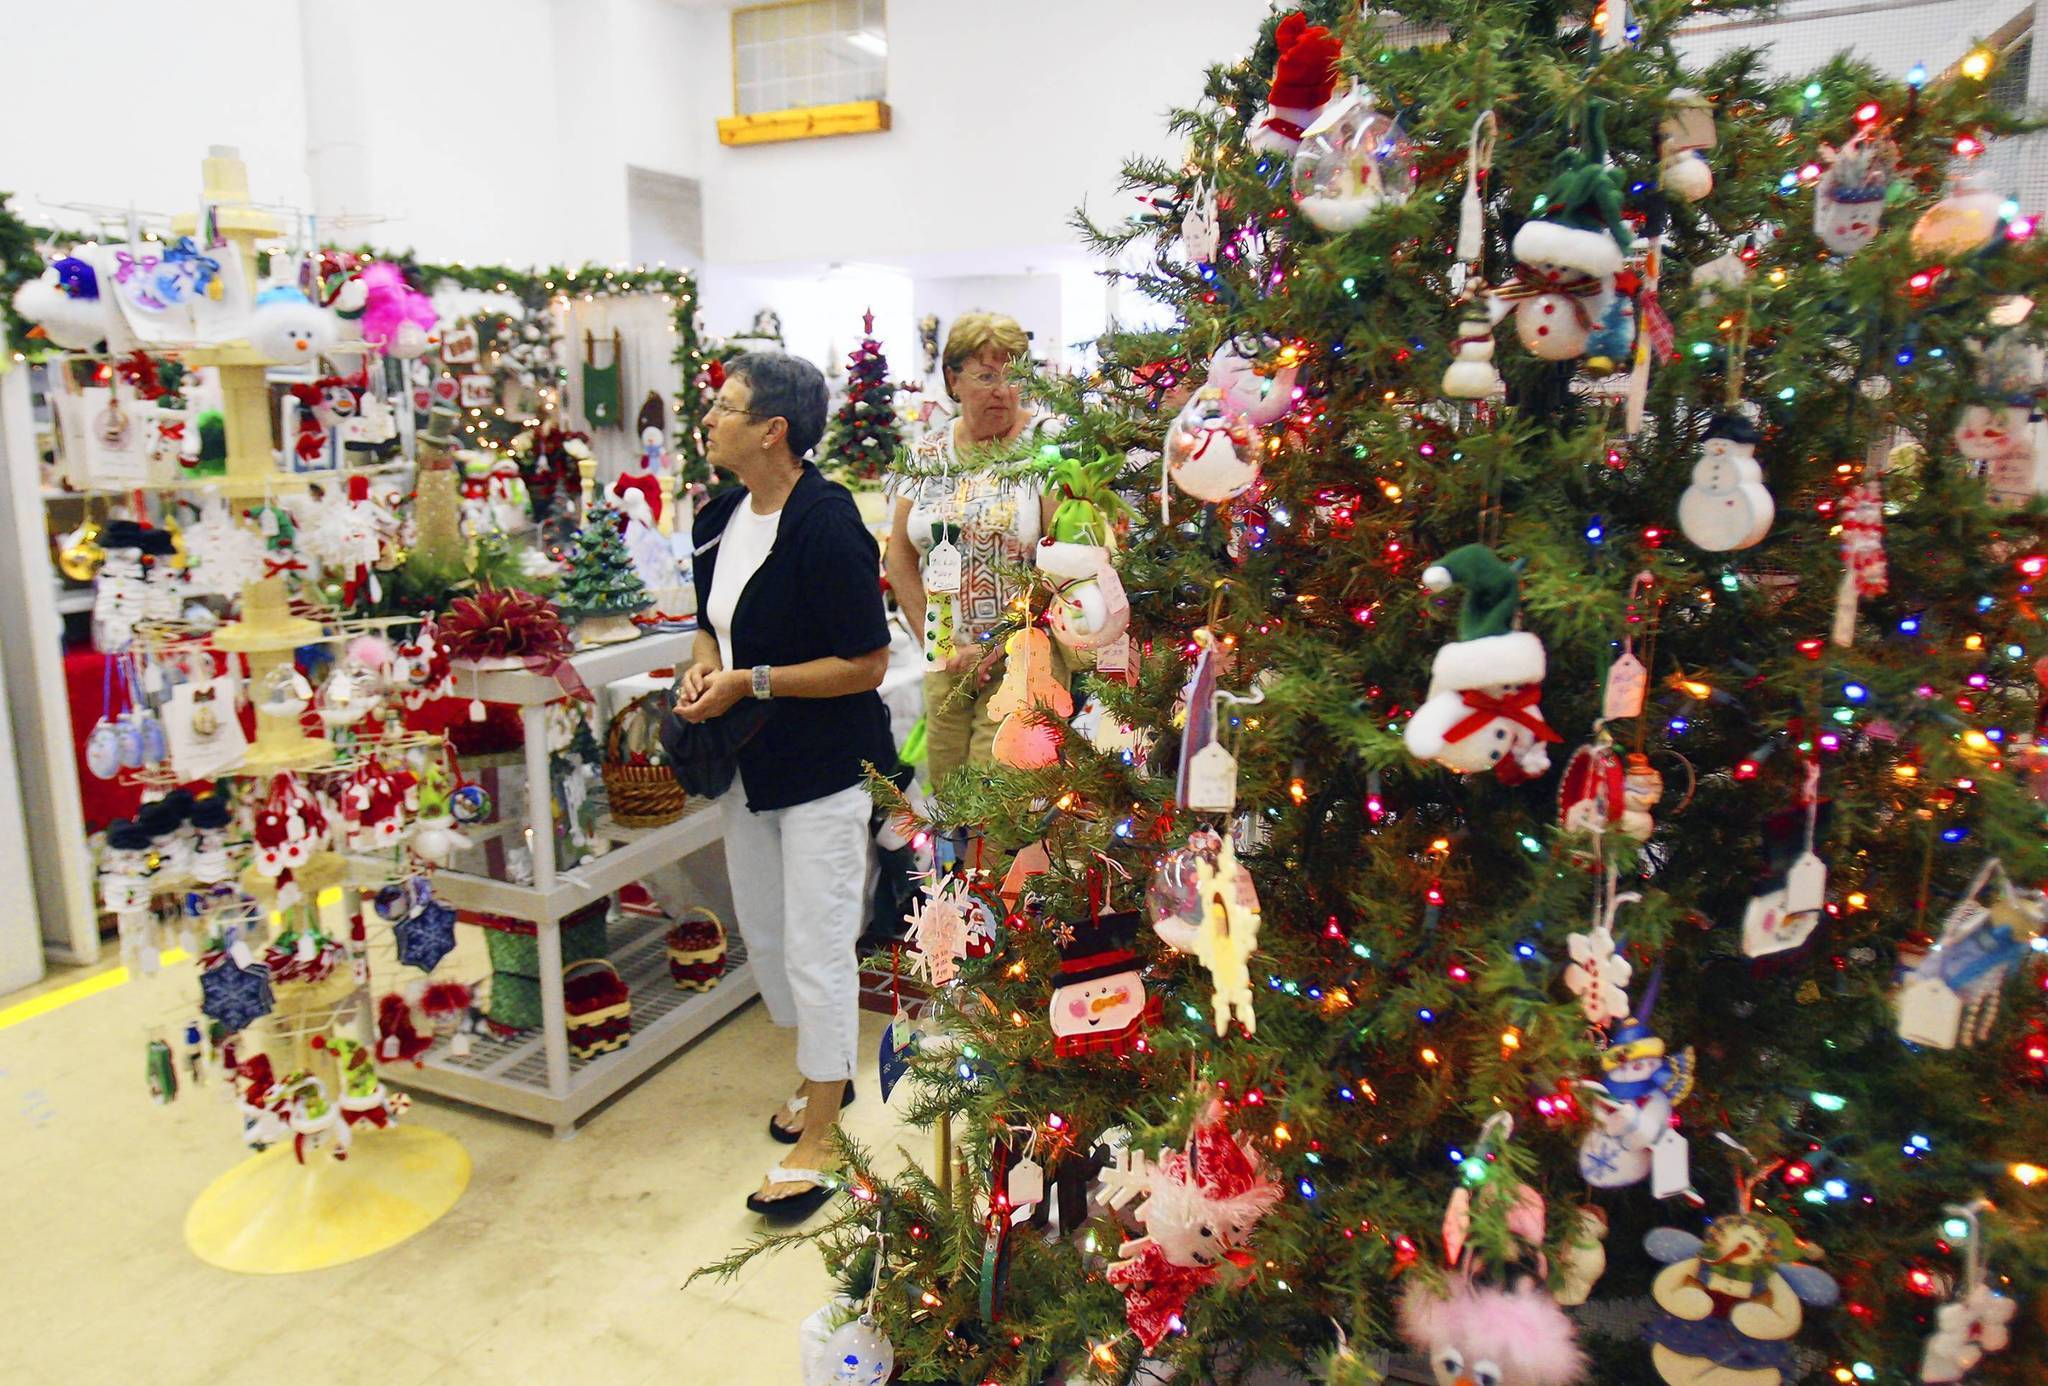 Early birds do Christmas shopping at the Main Street Christmas House on Friday, November 16, 2012. The annual event features more than 50,000 handcrafted holiday decorations and gifts by more than 100 craftsmen and women. The Christmas House opened Nov. 1 and will remain open until Dec. 15.  (Tom Benitez/Orlando Sentinel)